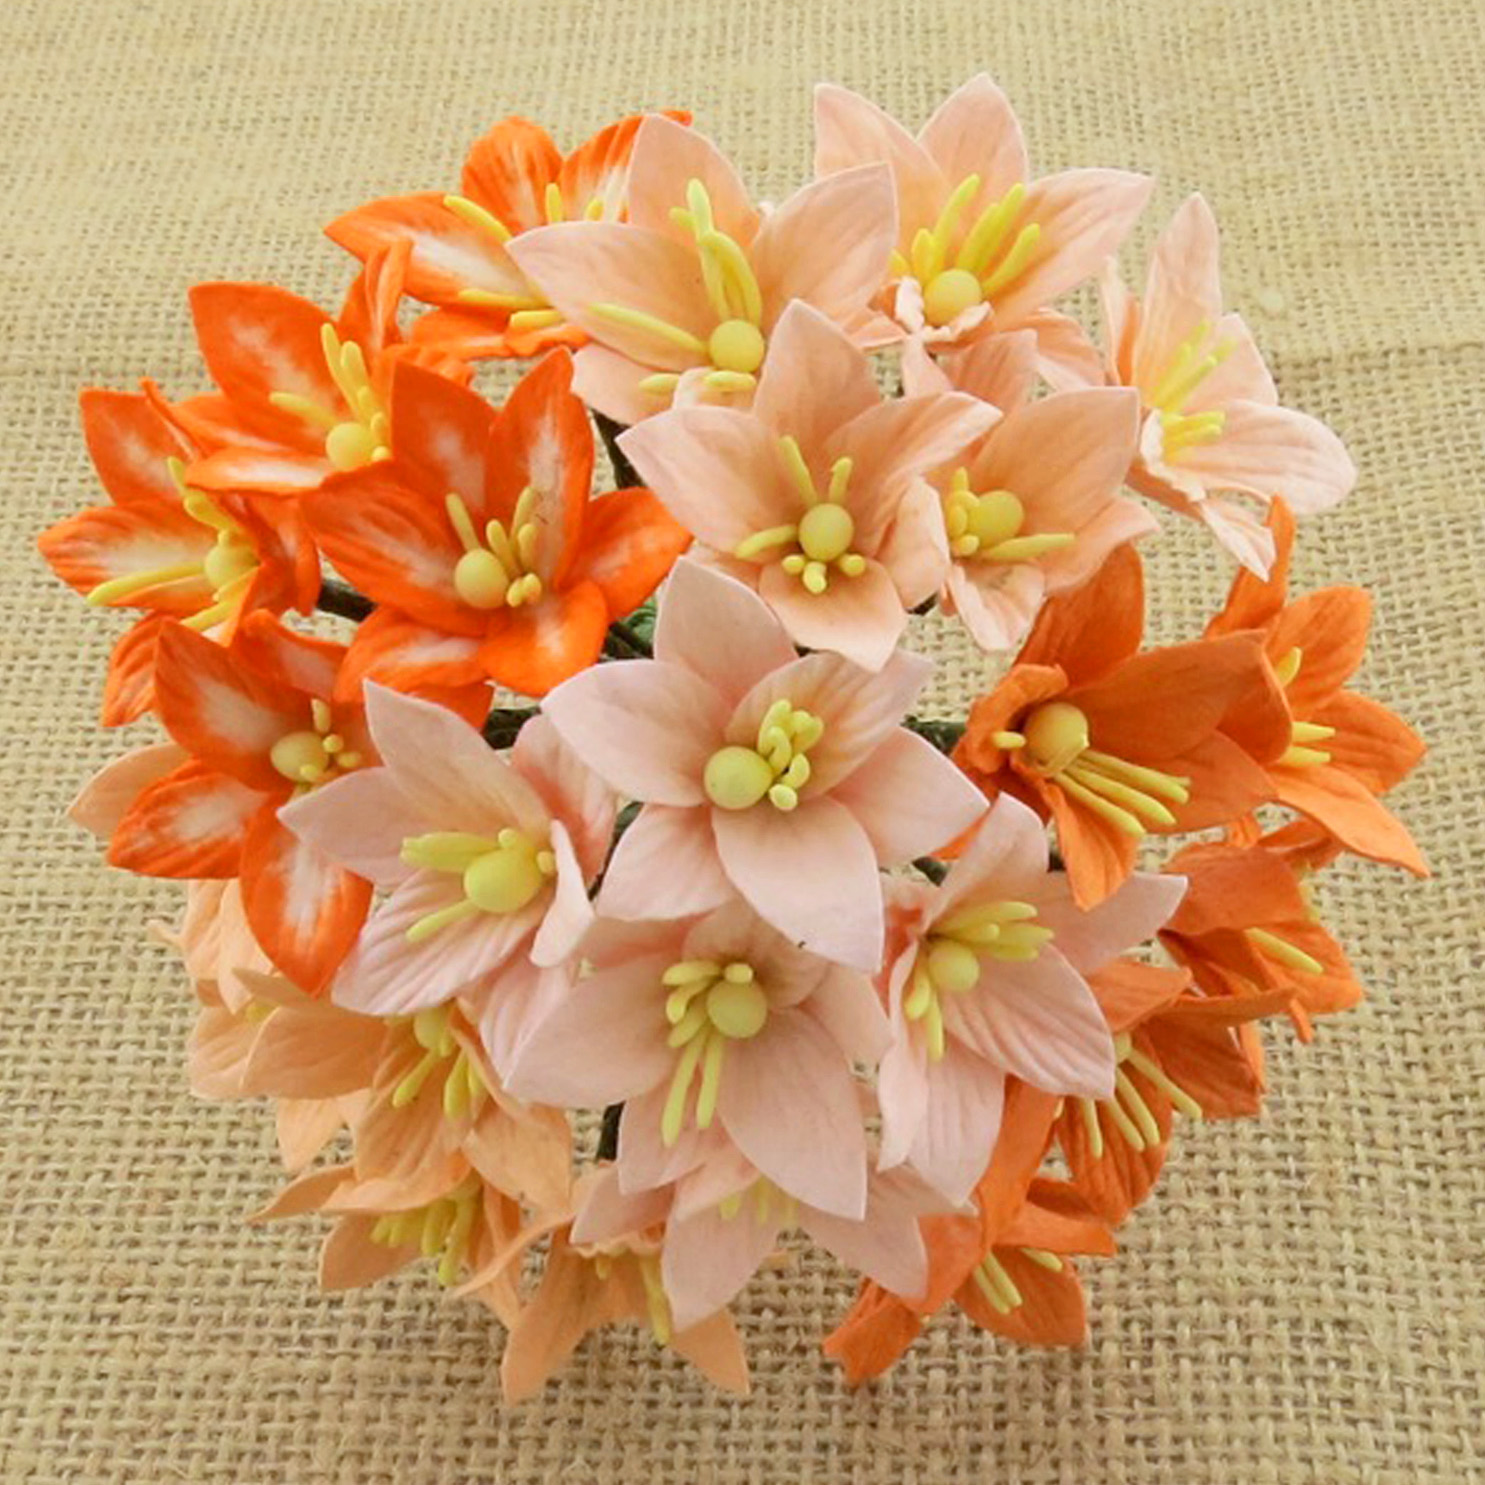 50 MIXED PEACH/ORANGE MULBERRY PAPER LILY FLOWERS - 5 COLOR